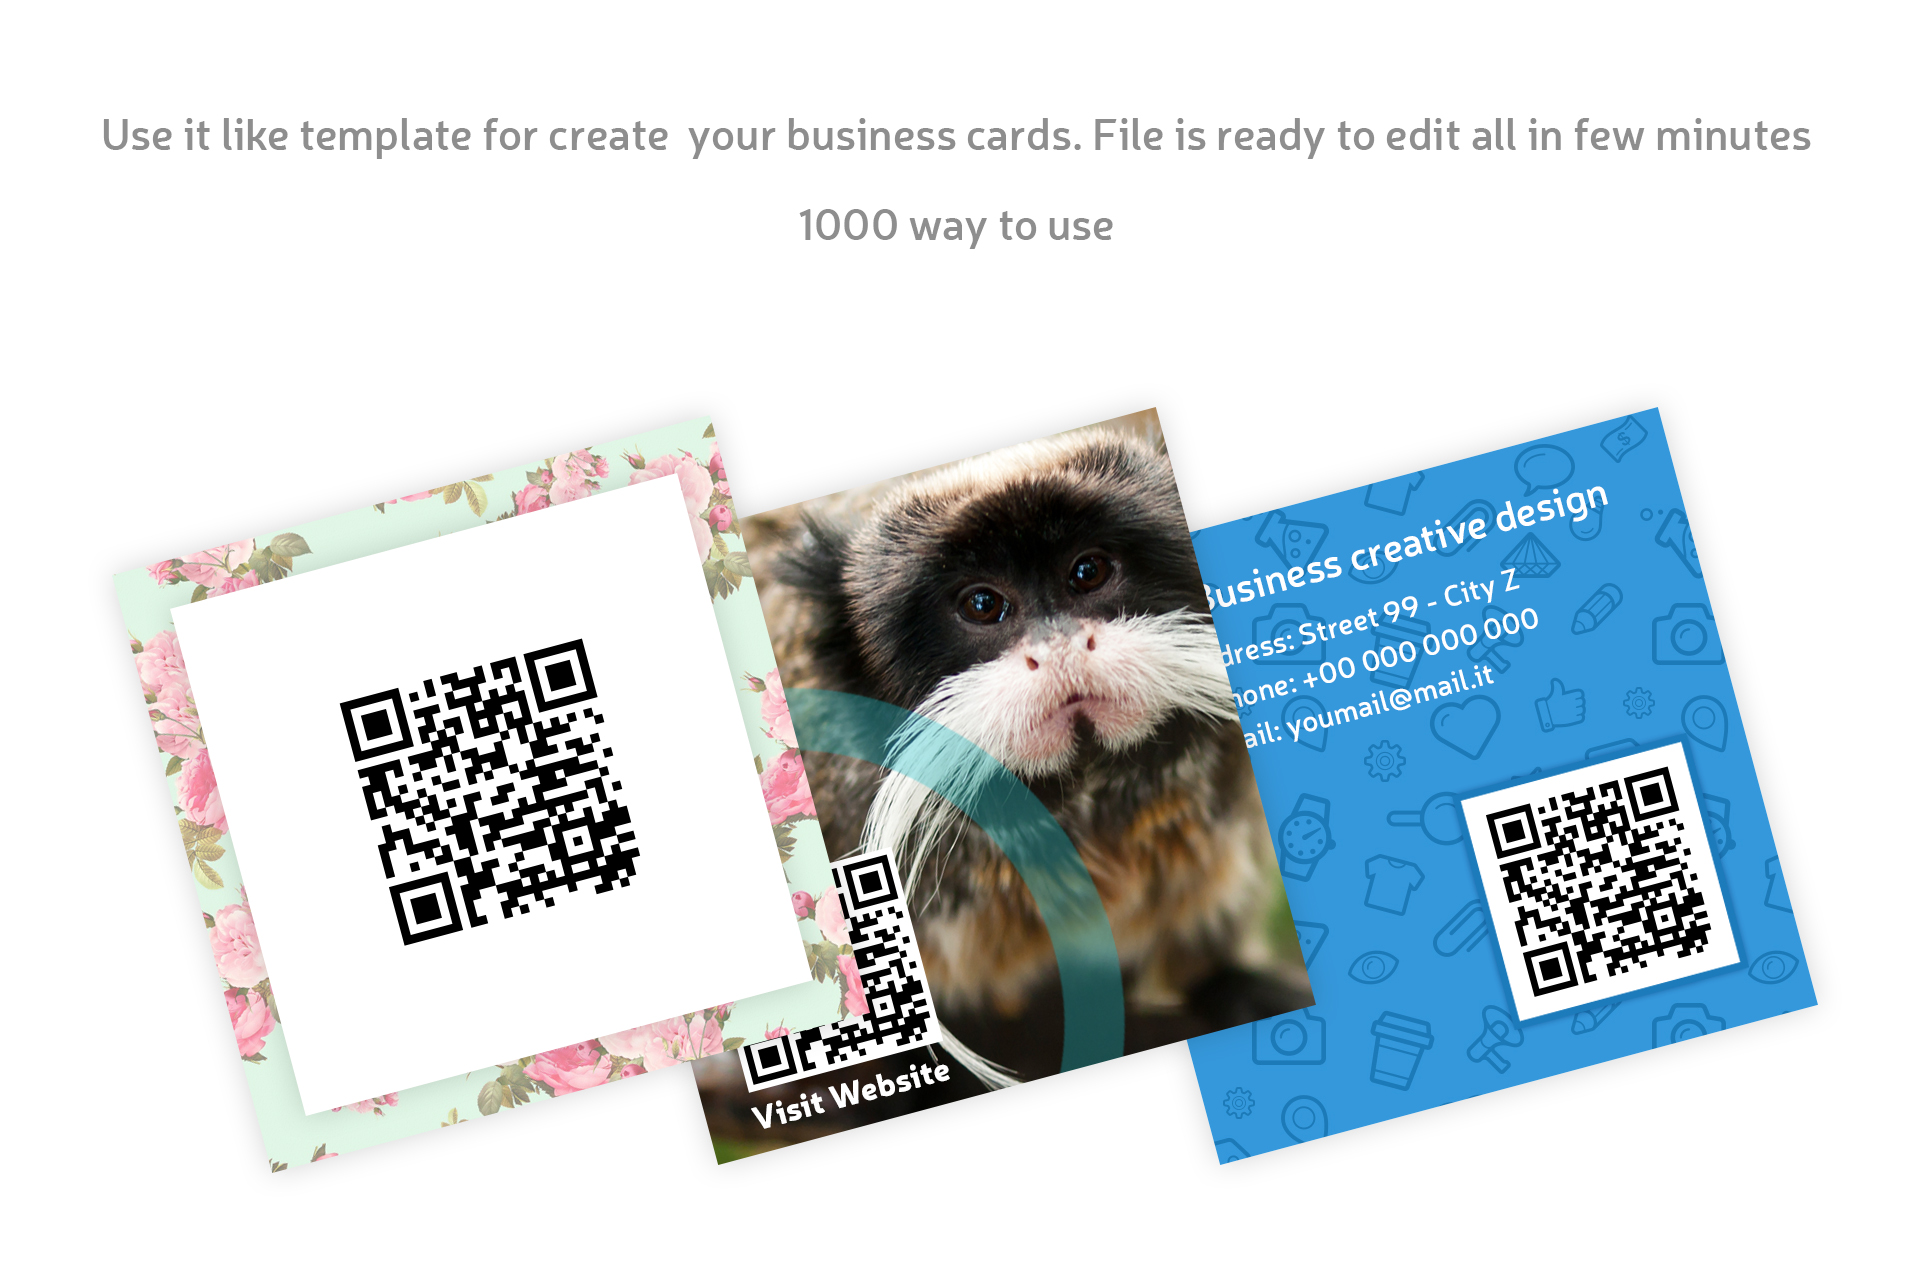 Square business card qr code by manudes design bundles square business card qr code example image 3 reheart Image collections